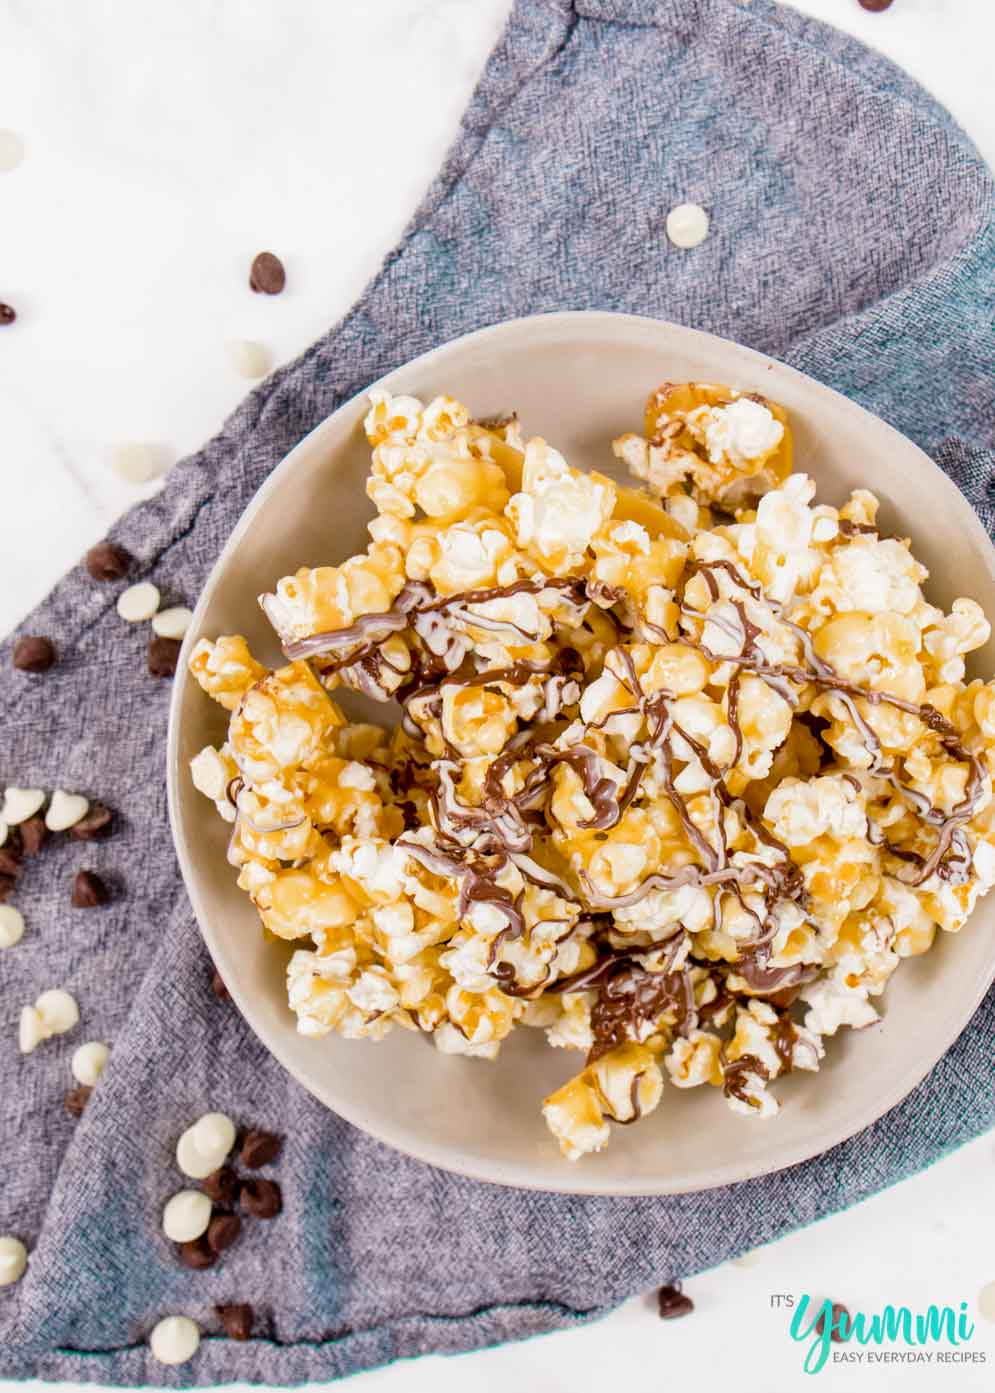 Homemade Caramel Corn with Chocolate